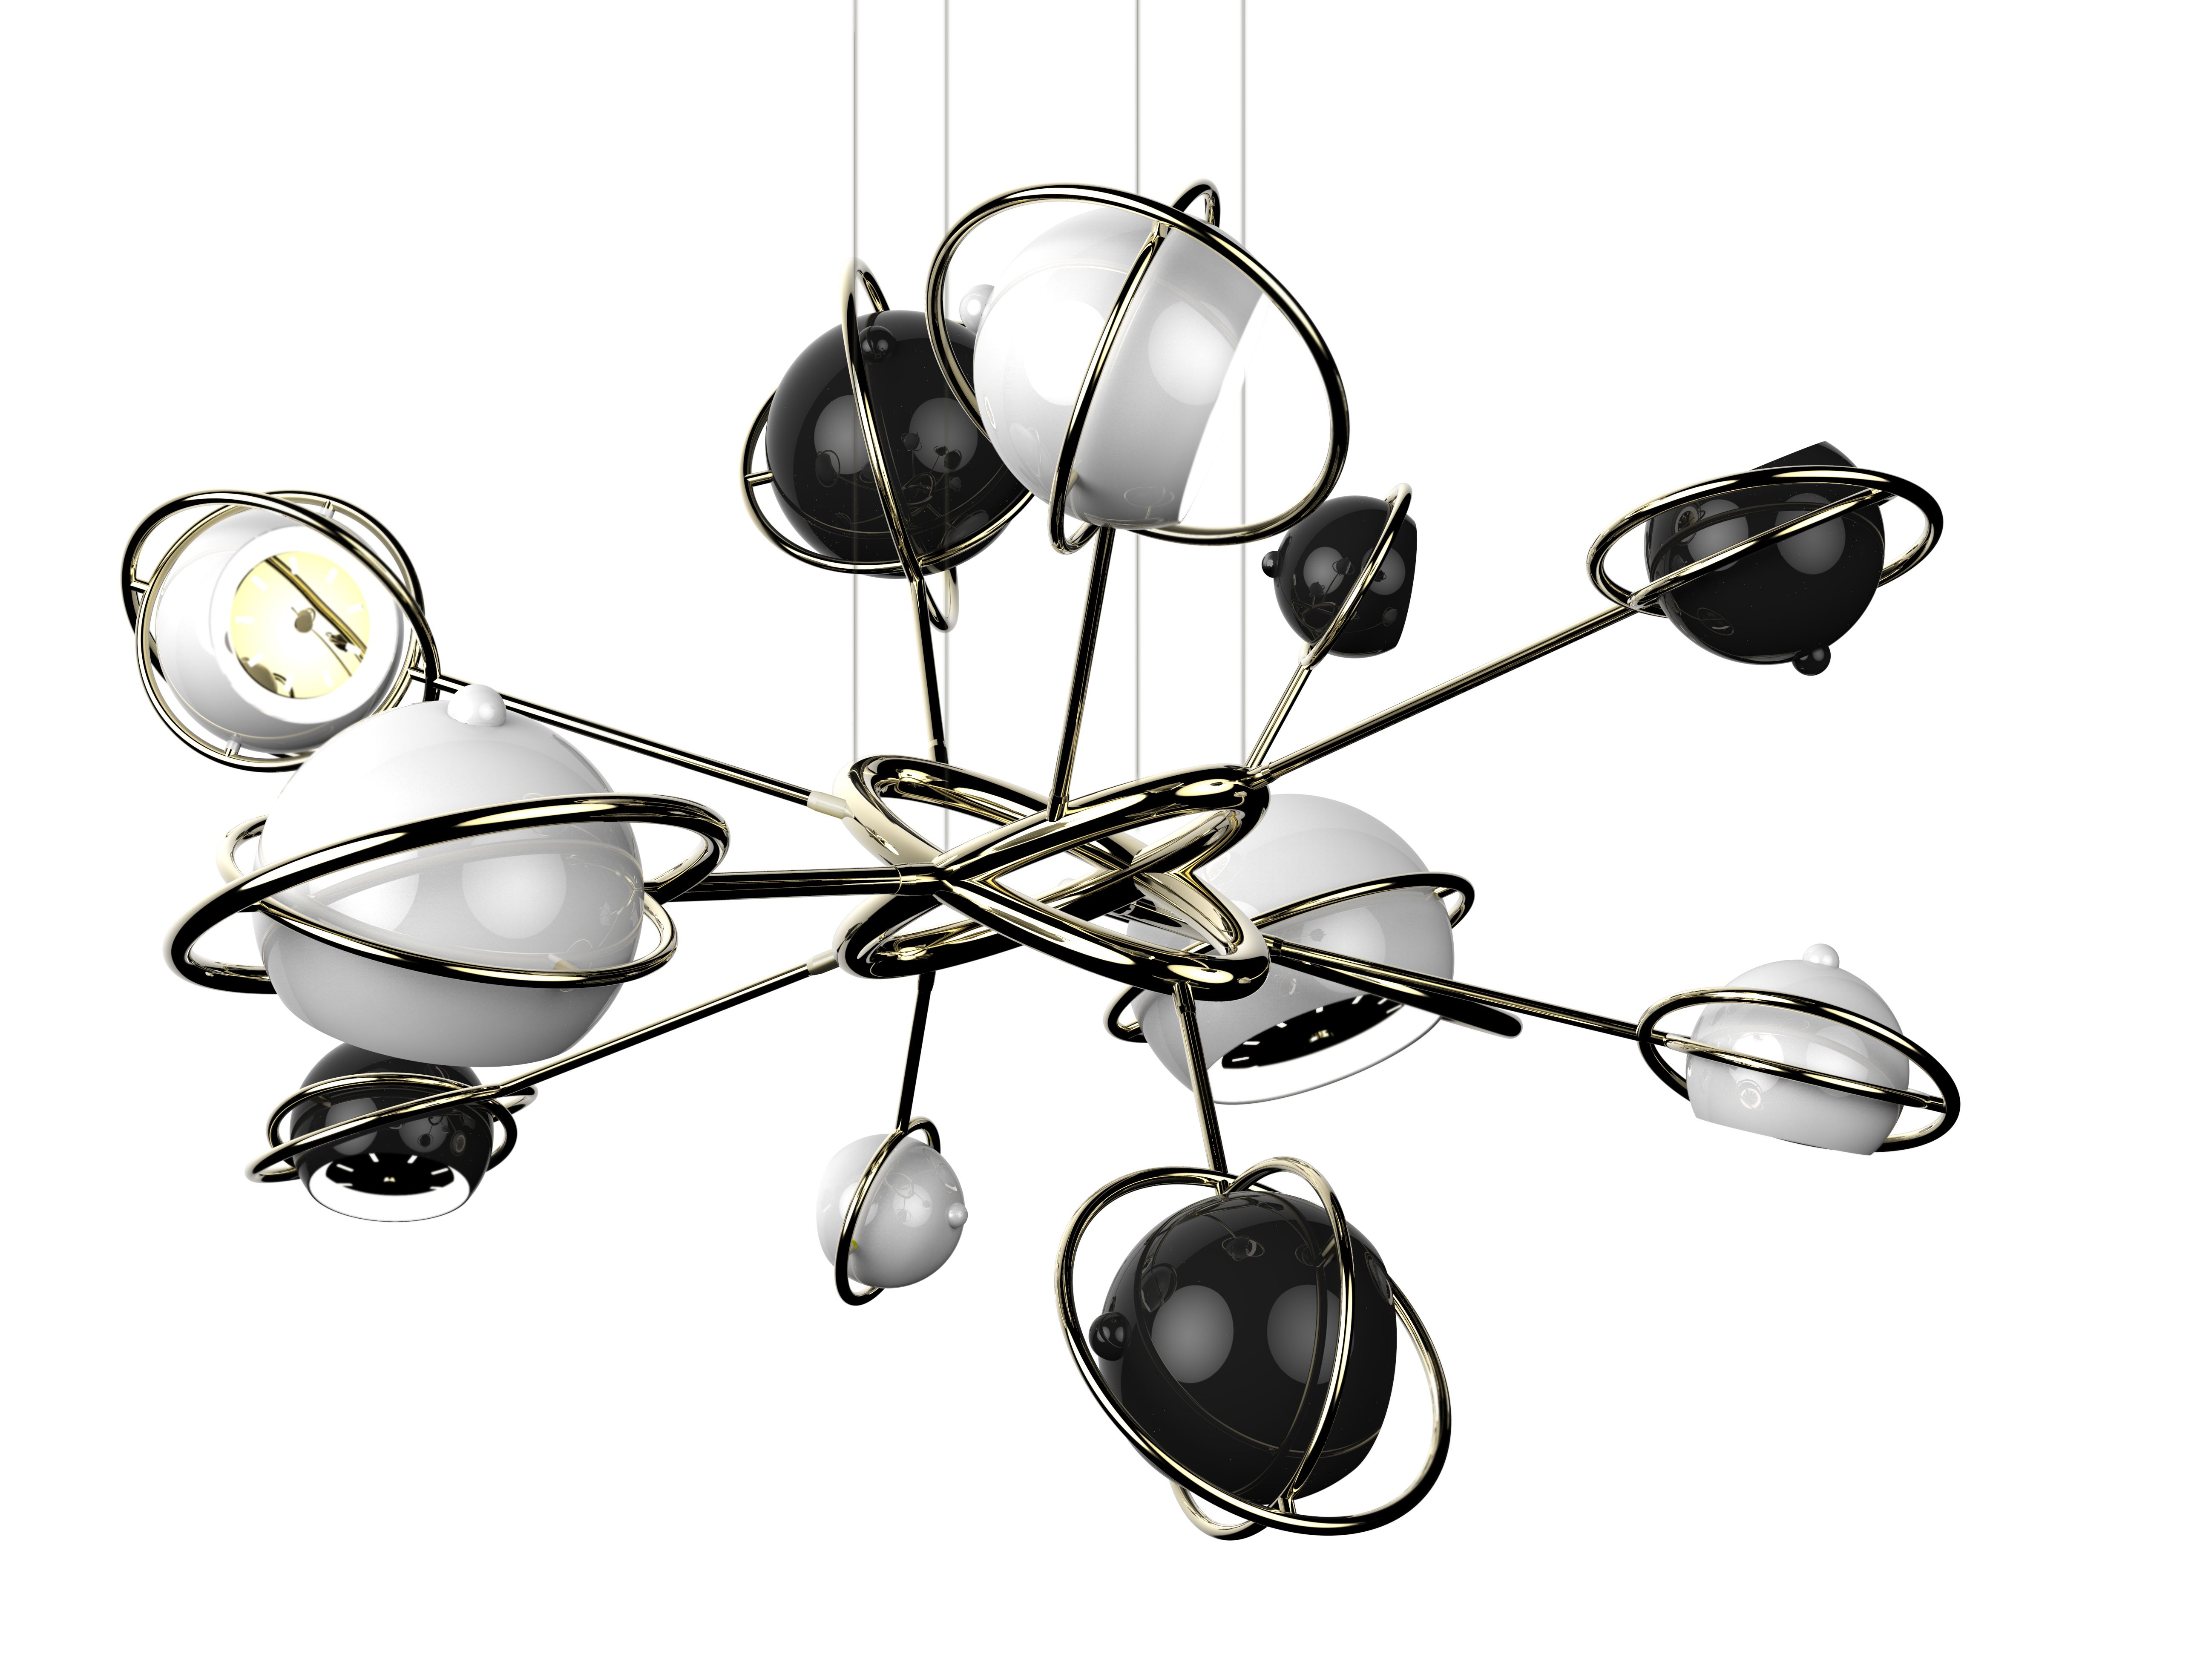 Cosmo a ceiling lamp for the universe cosmos ceilings and bedrooms cosmo a ceiling lamp for the universe new york design agenda aloadofball Image collections